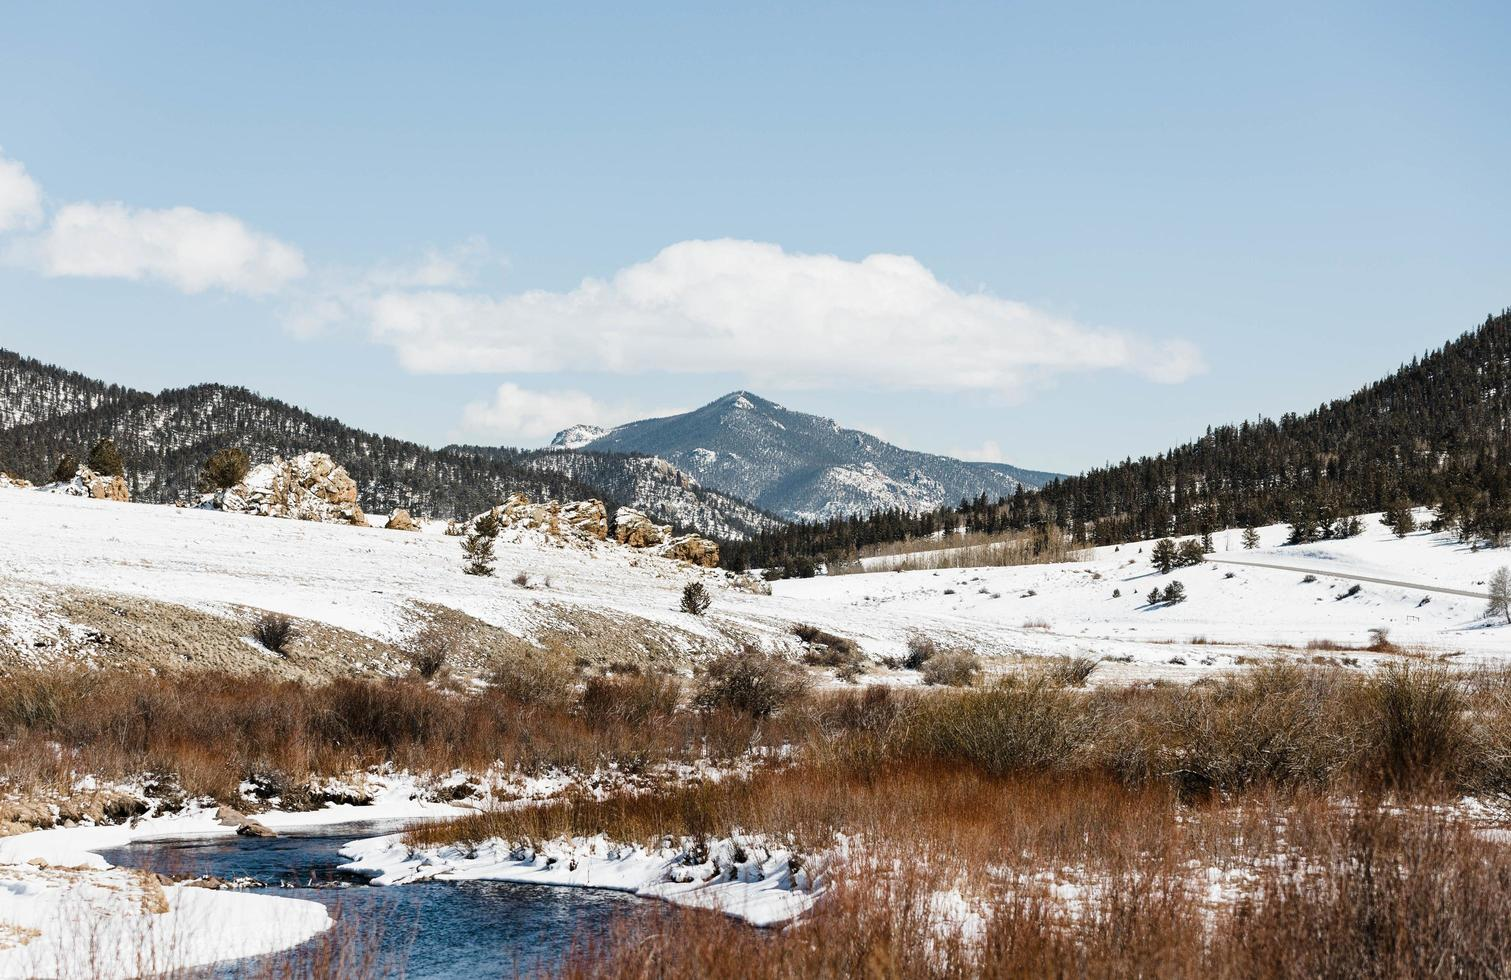 Snowy field and stream by mountain photo